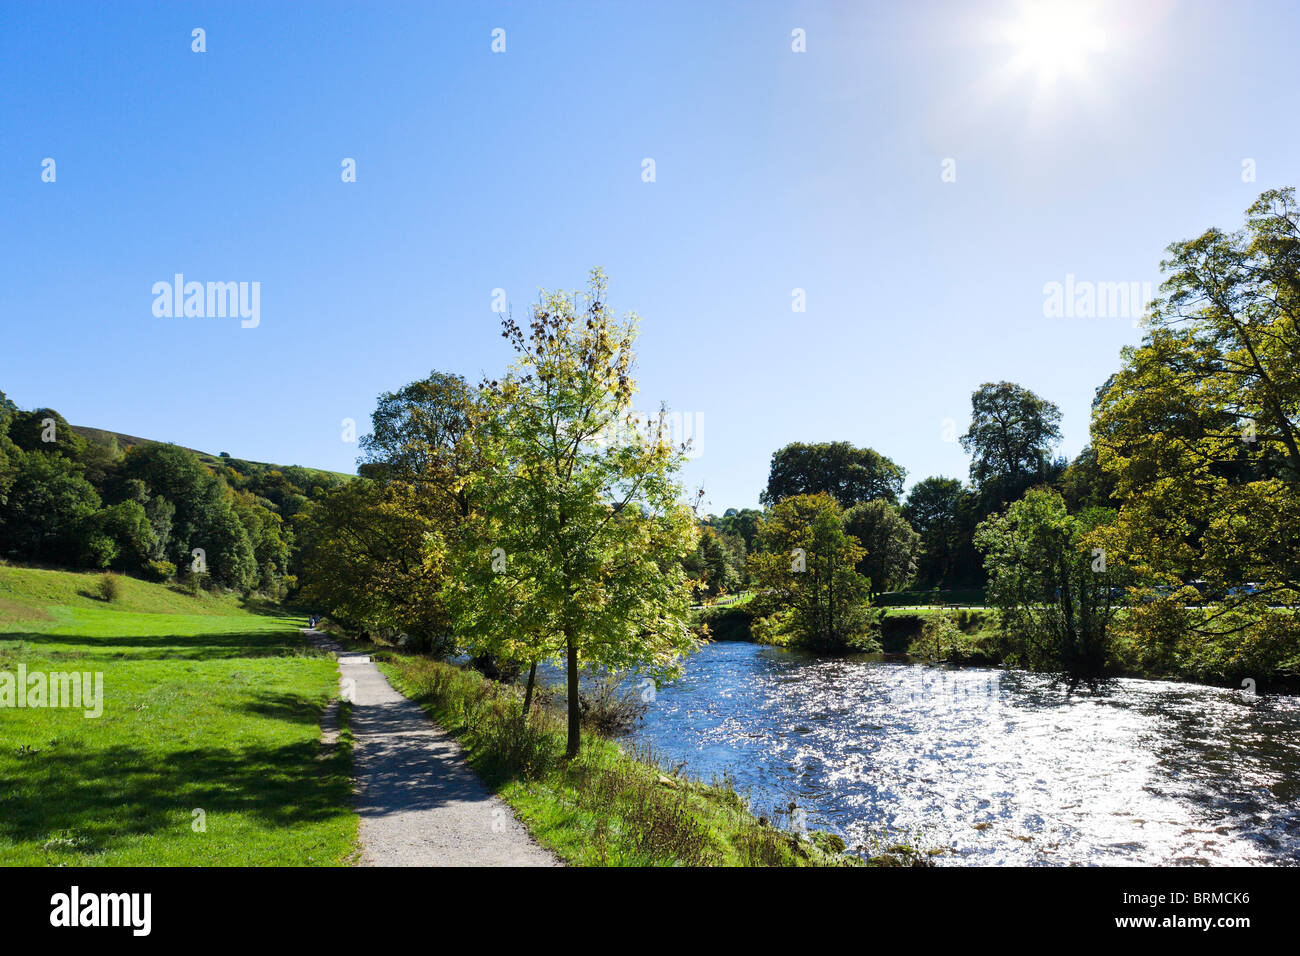 Dales Way path alongside the River Wharfe near the Cavendish Pavilion, Bolton Abbey, Wharfedale, Yorkshire Dales, - Stock Image